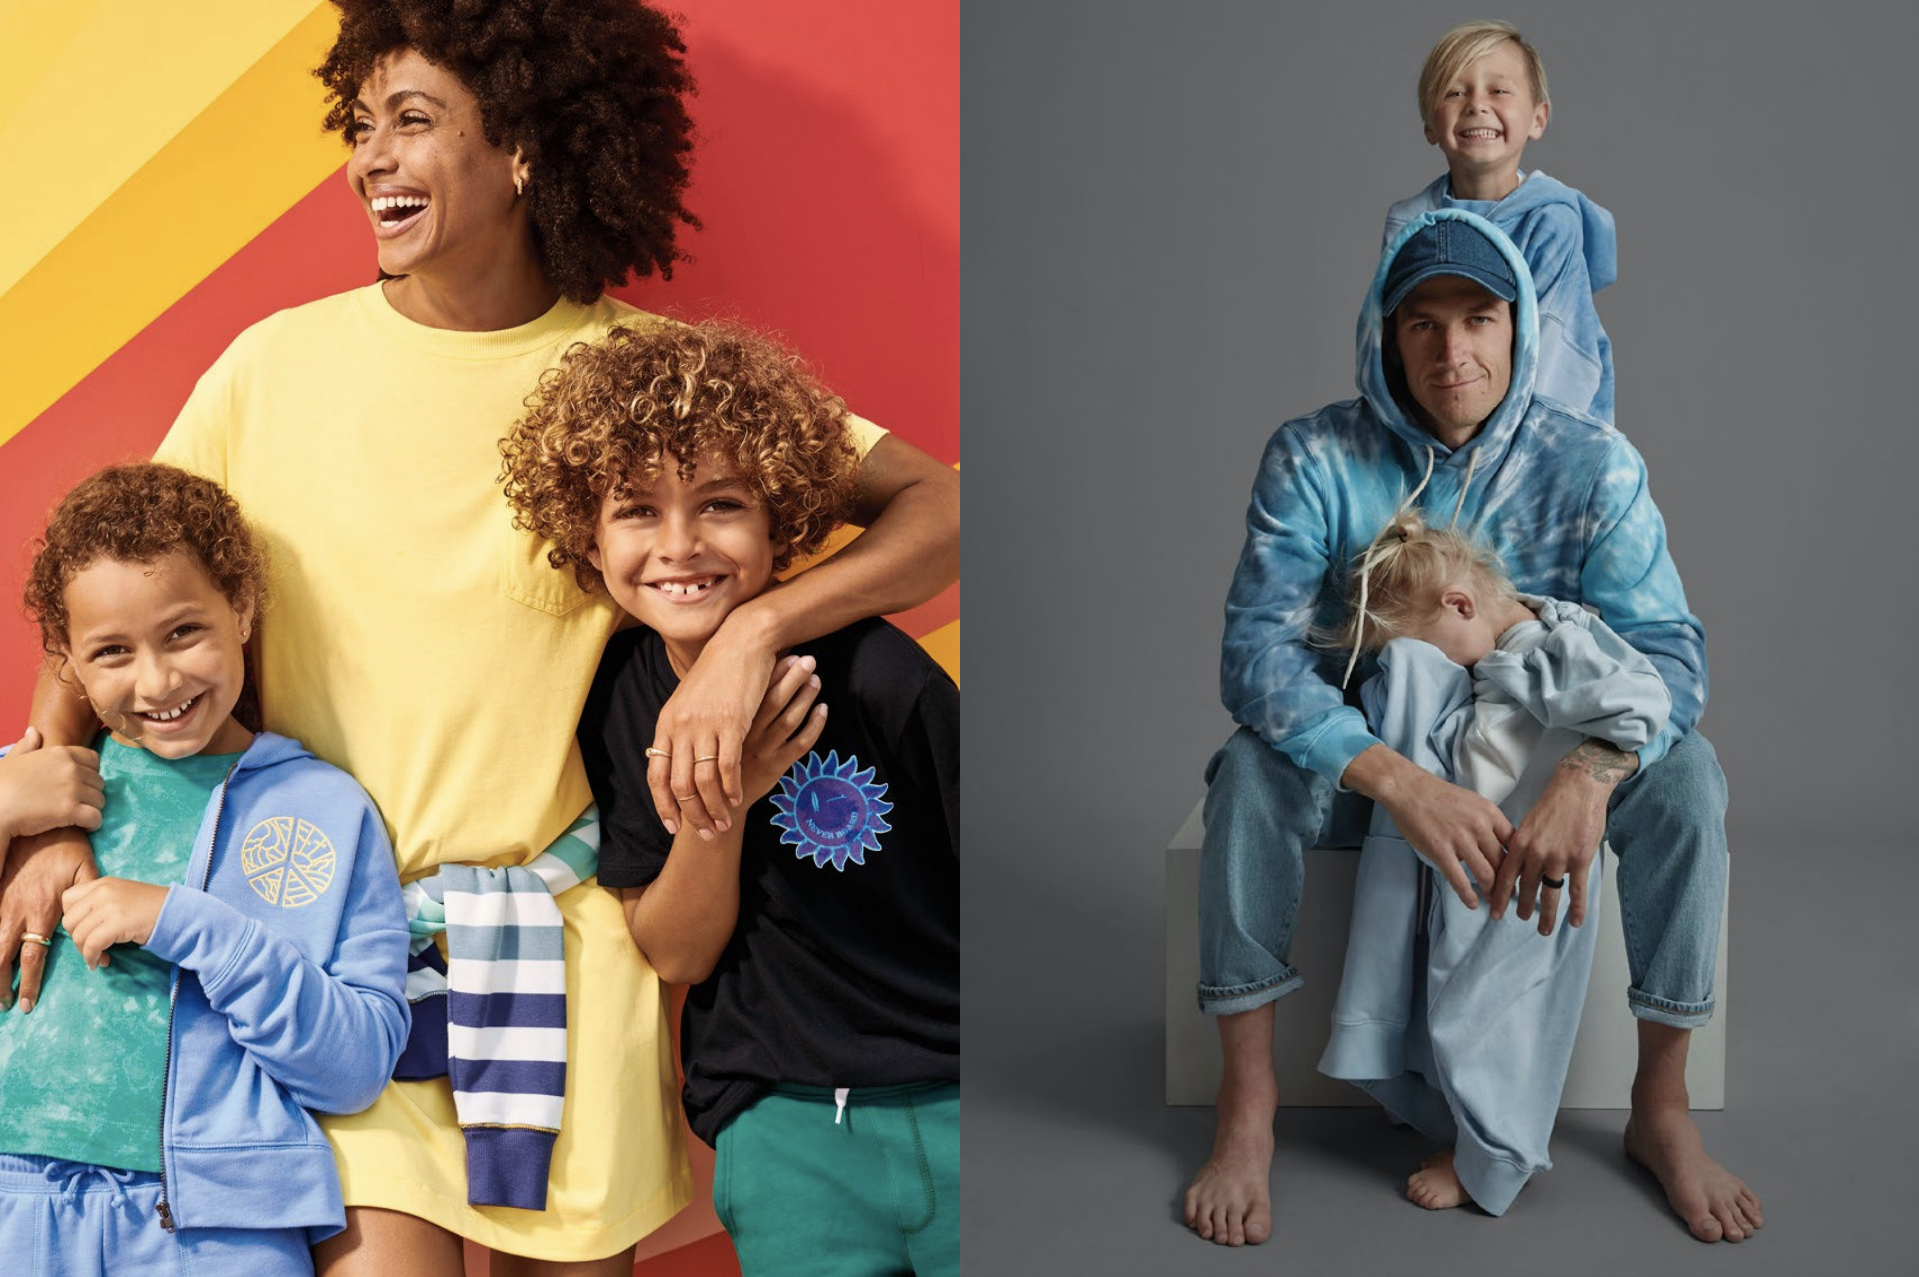 Gap Inc. reeled in $4 billion in sales and generated $166 million in net income, and raised its 2021 guidance across sales and earnings.